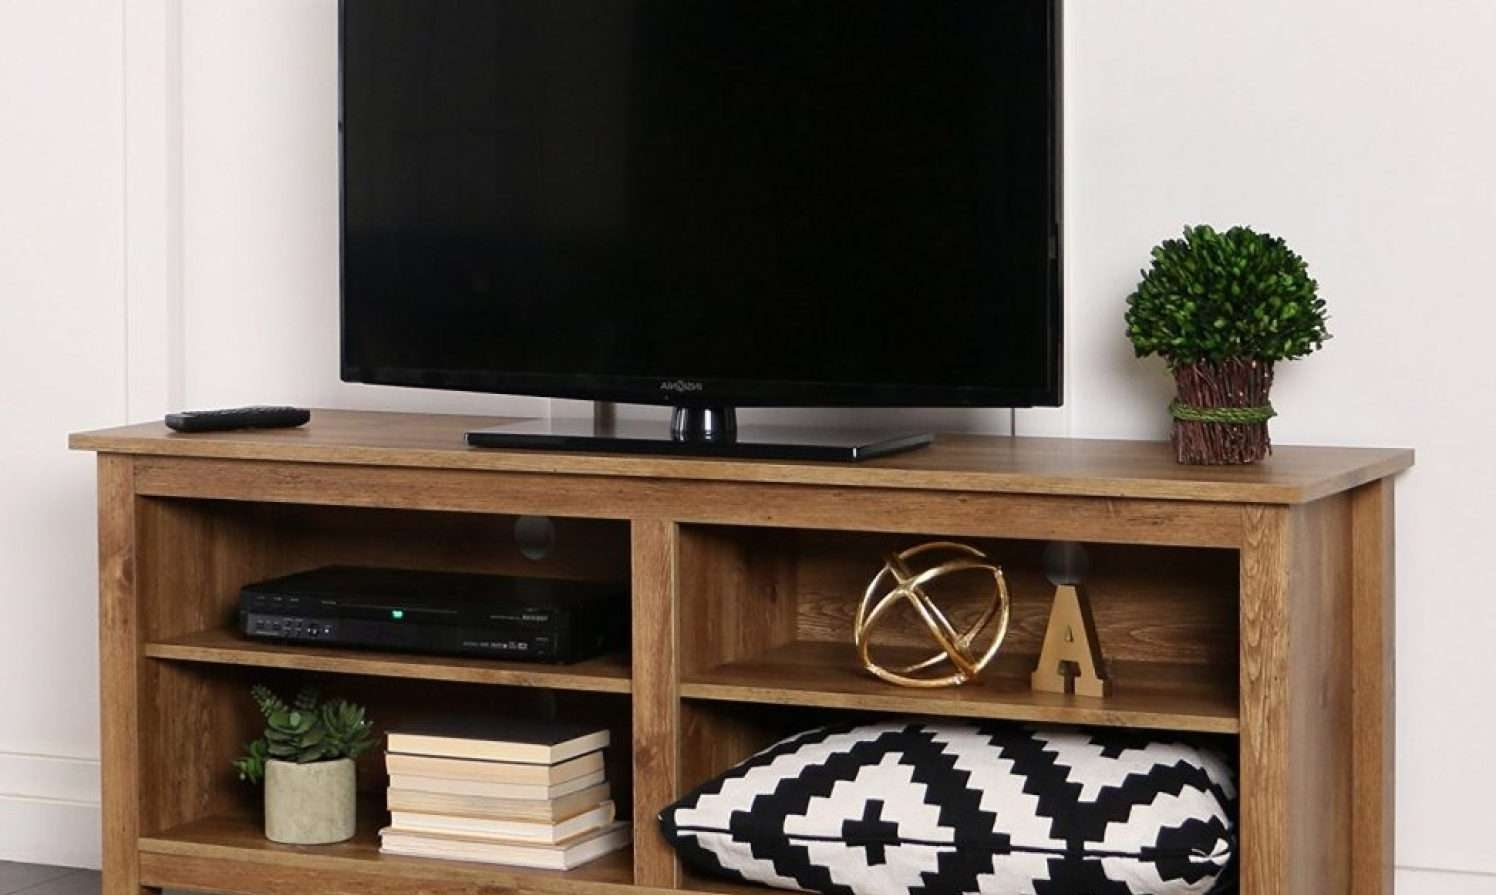 Tv : Wonderful Easel Tv Stands For Flat Screens Inspireda With Easel Tv Stands For Flat Screens (View 11 of 15)